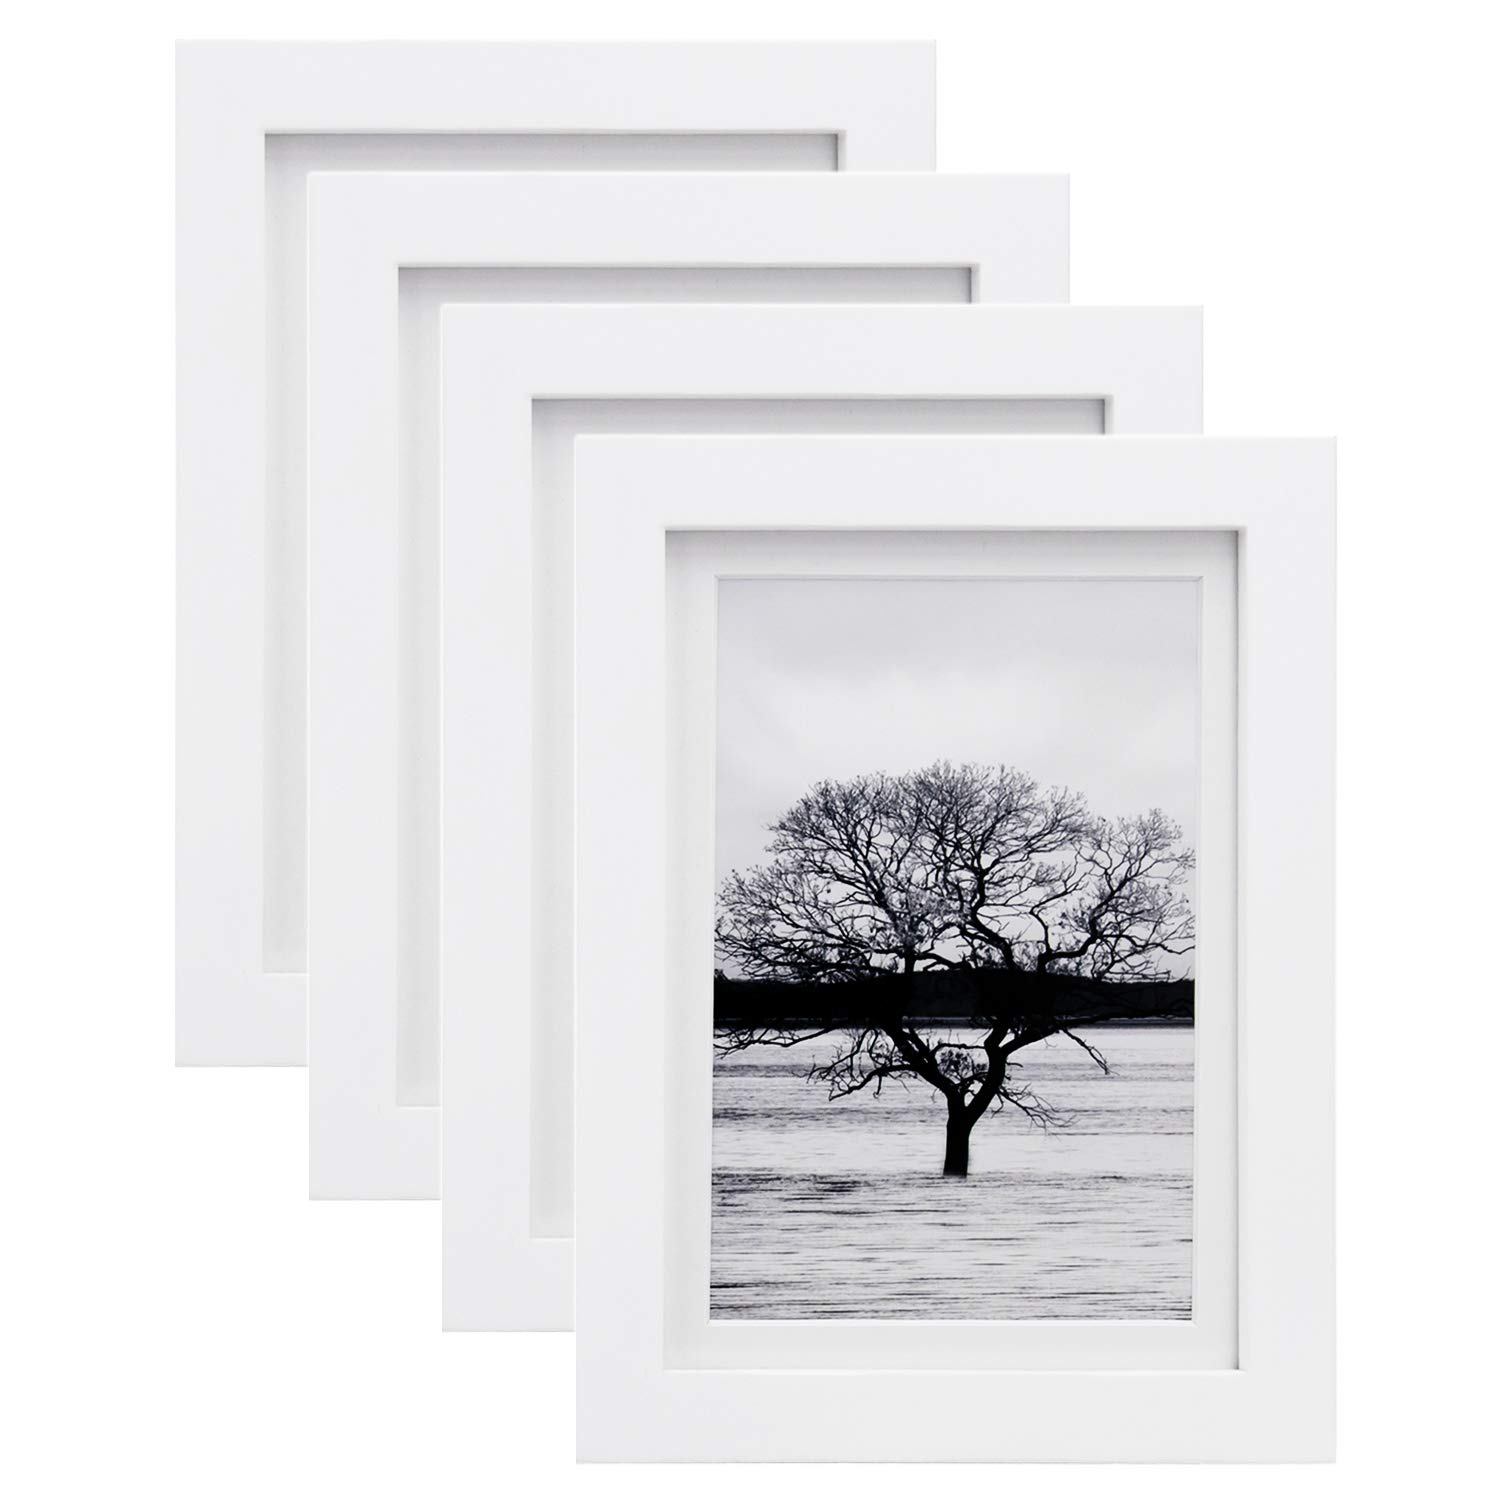 Egofine 5x7 Picture Frames 4 PCS - Made of Solid Wood HD Plexiglass for Table Top Display and Wall Mounting Photo Frame White by Egofine